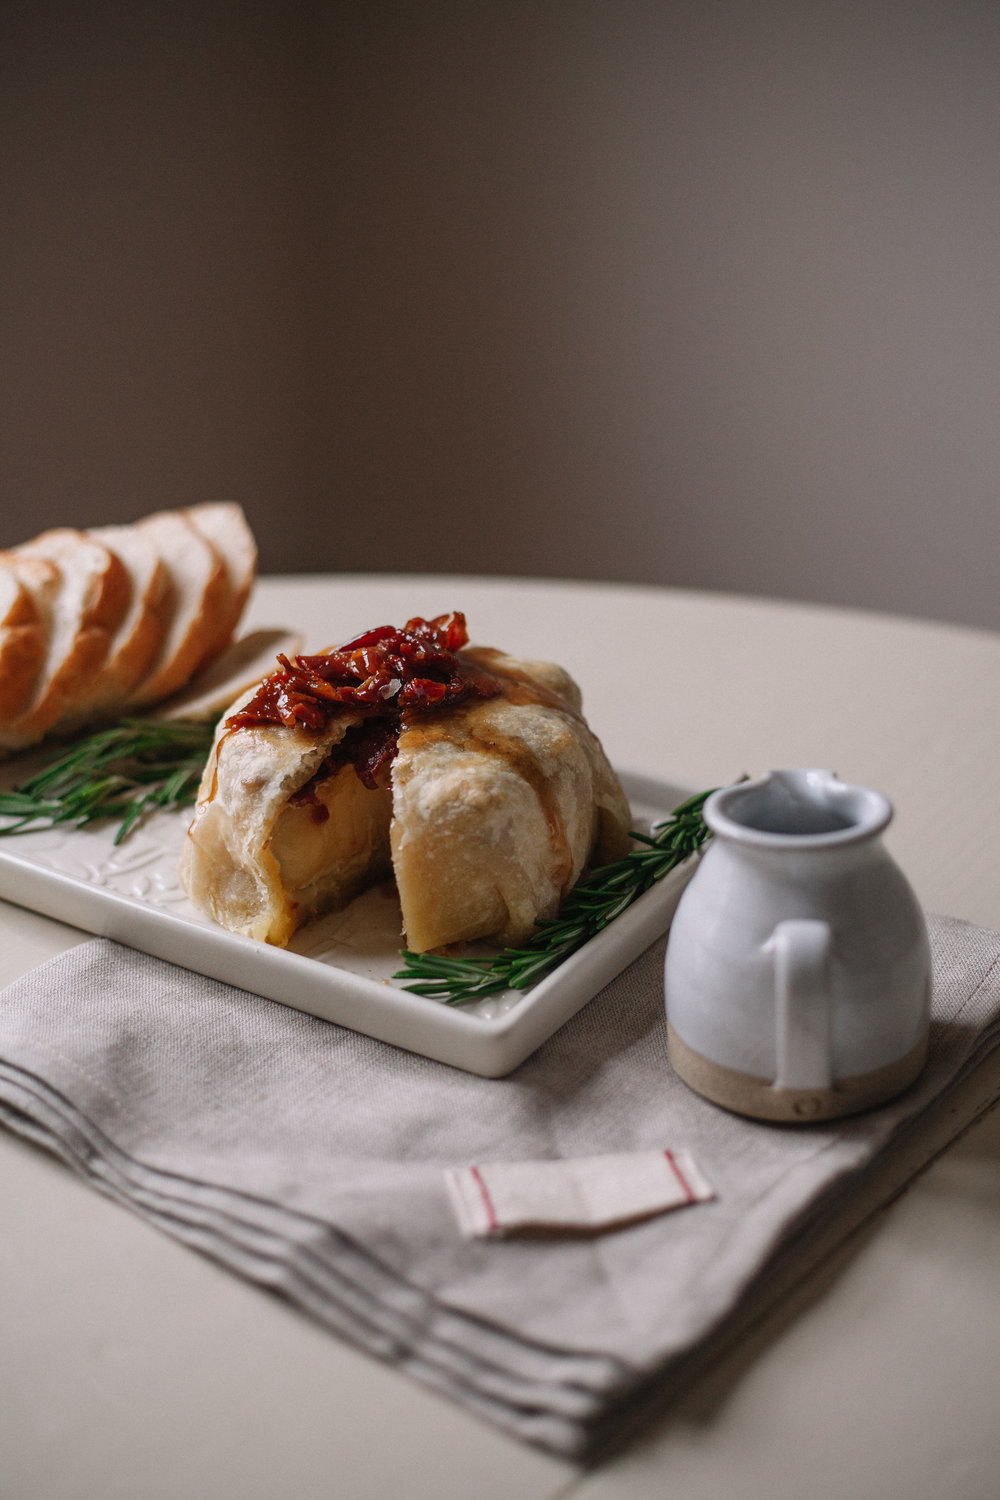 Maple Bacon Baked Brie | Marina Gunn